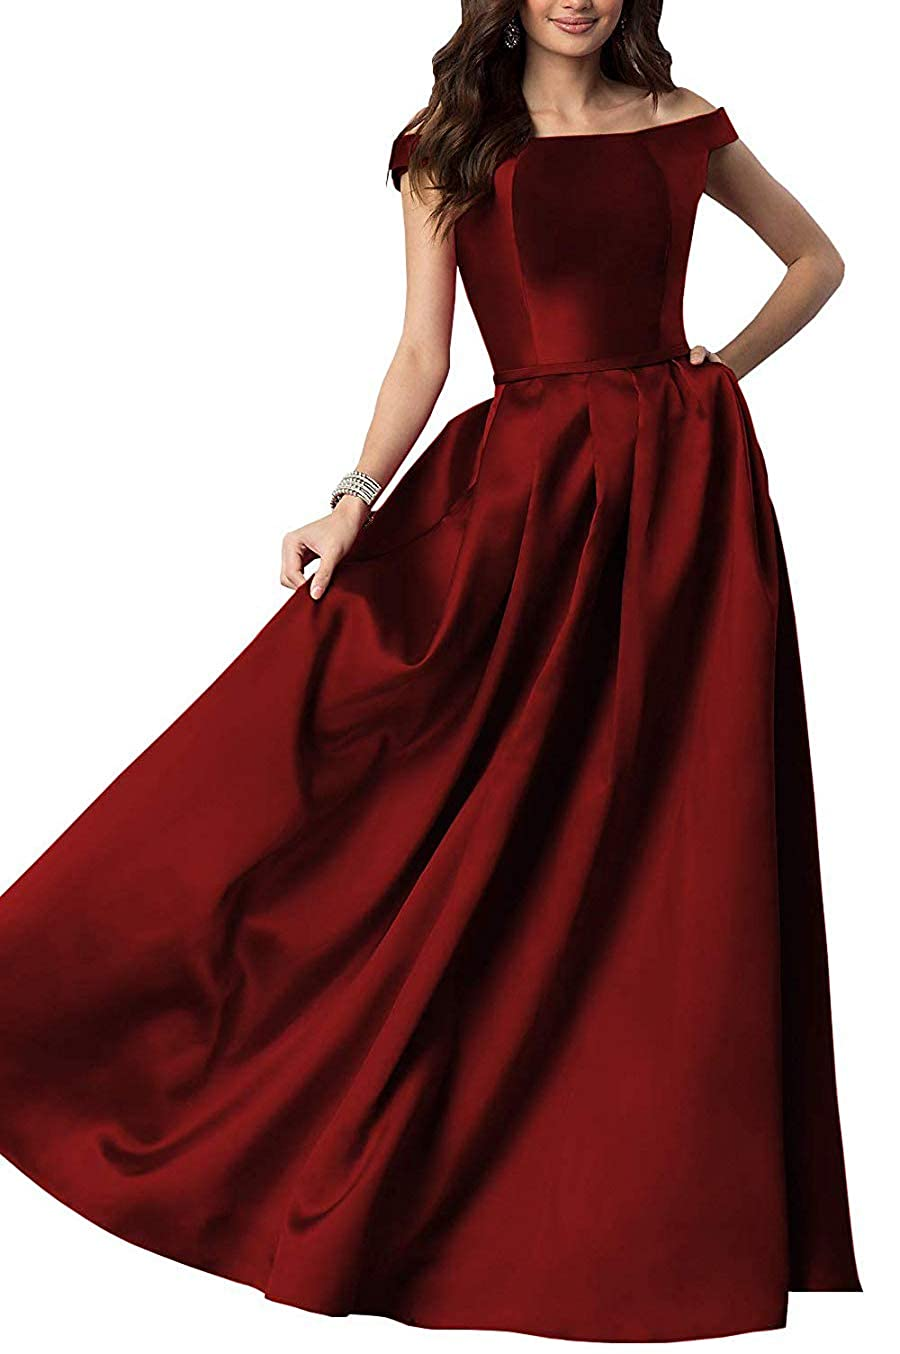 Burgundy Women's OffTheShoulder Satin Long Gown Prom Dress Evening Dresses with Pockets